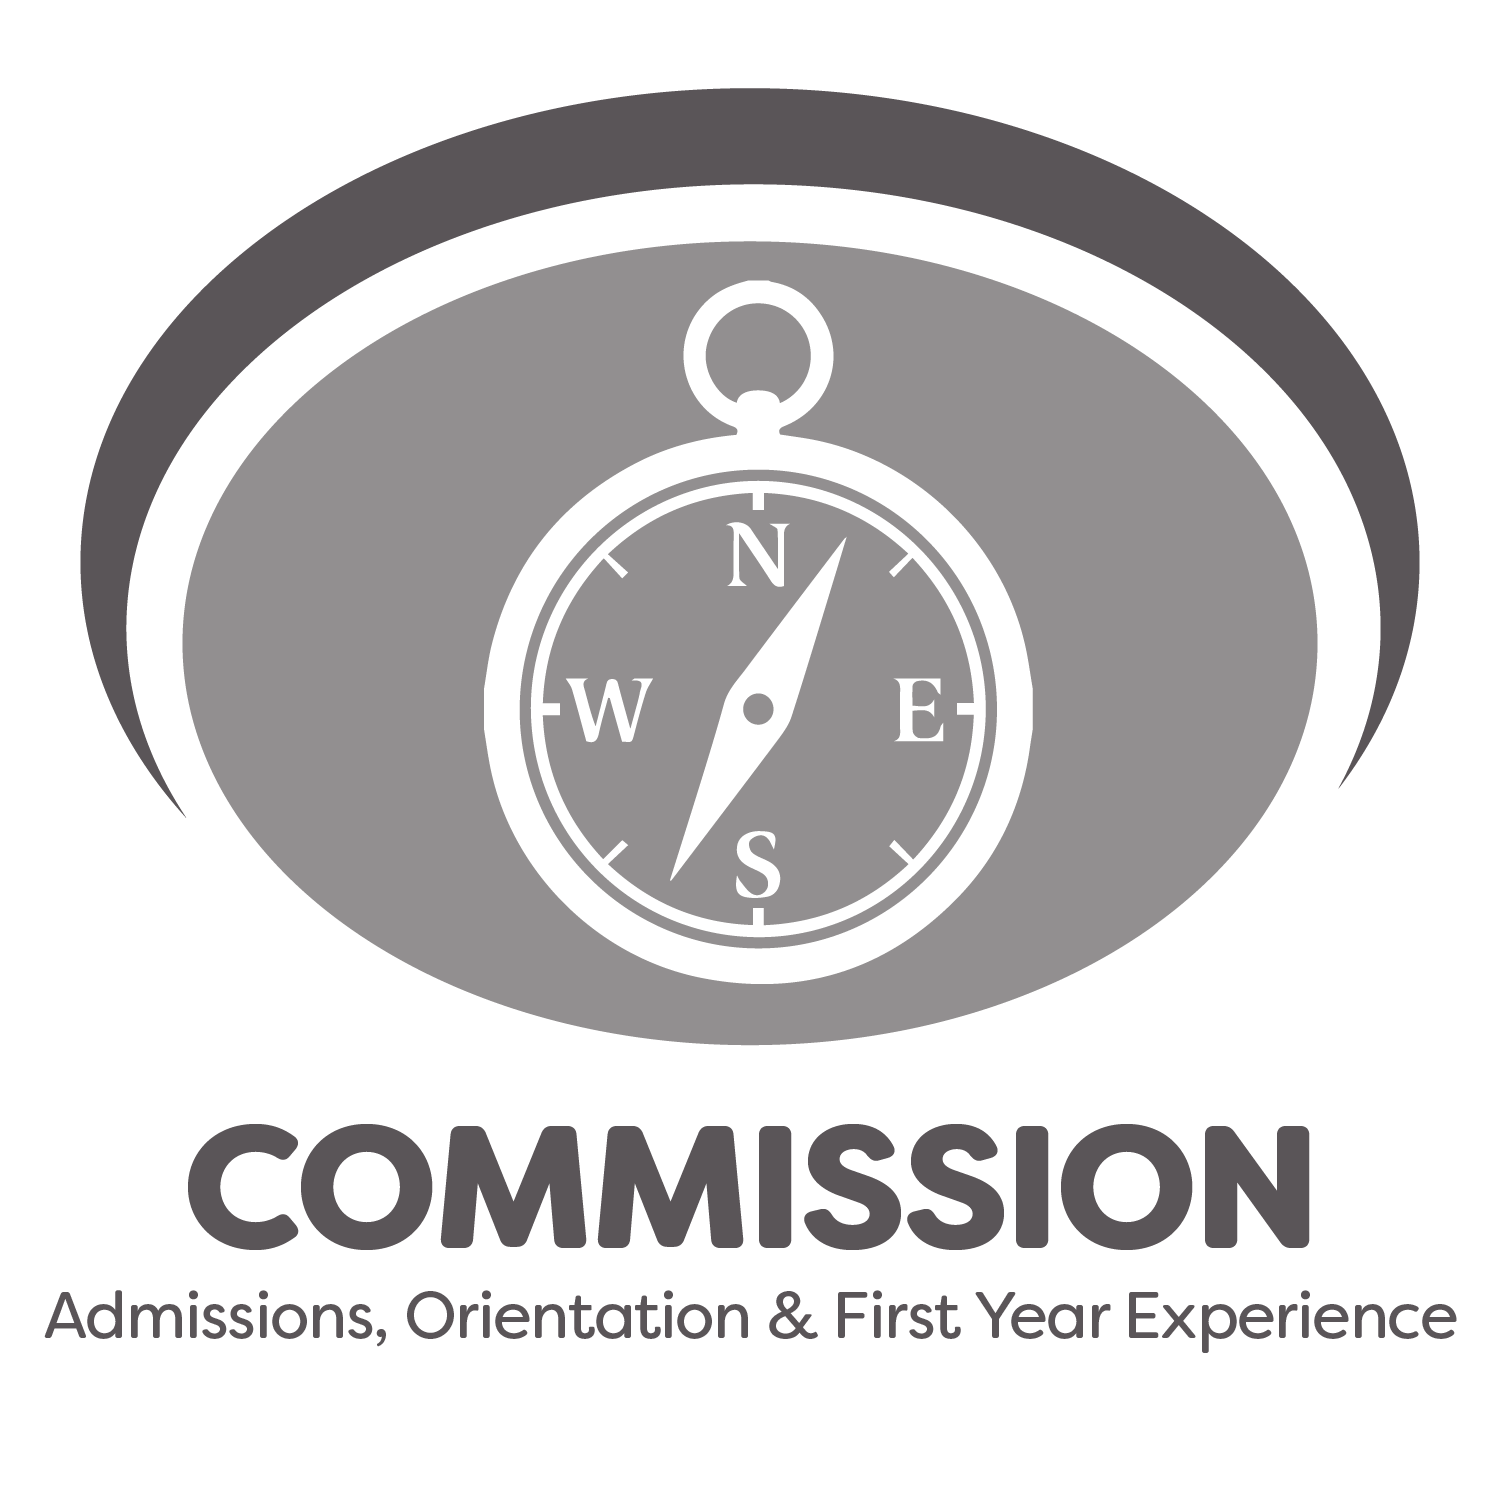 Commission for Admissions, Orientation and First Year Experience logo